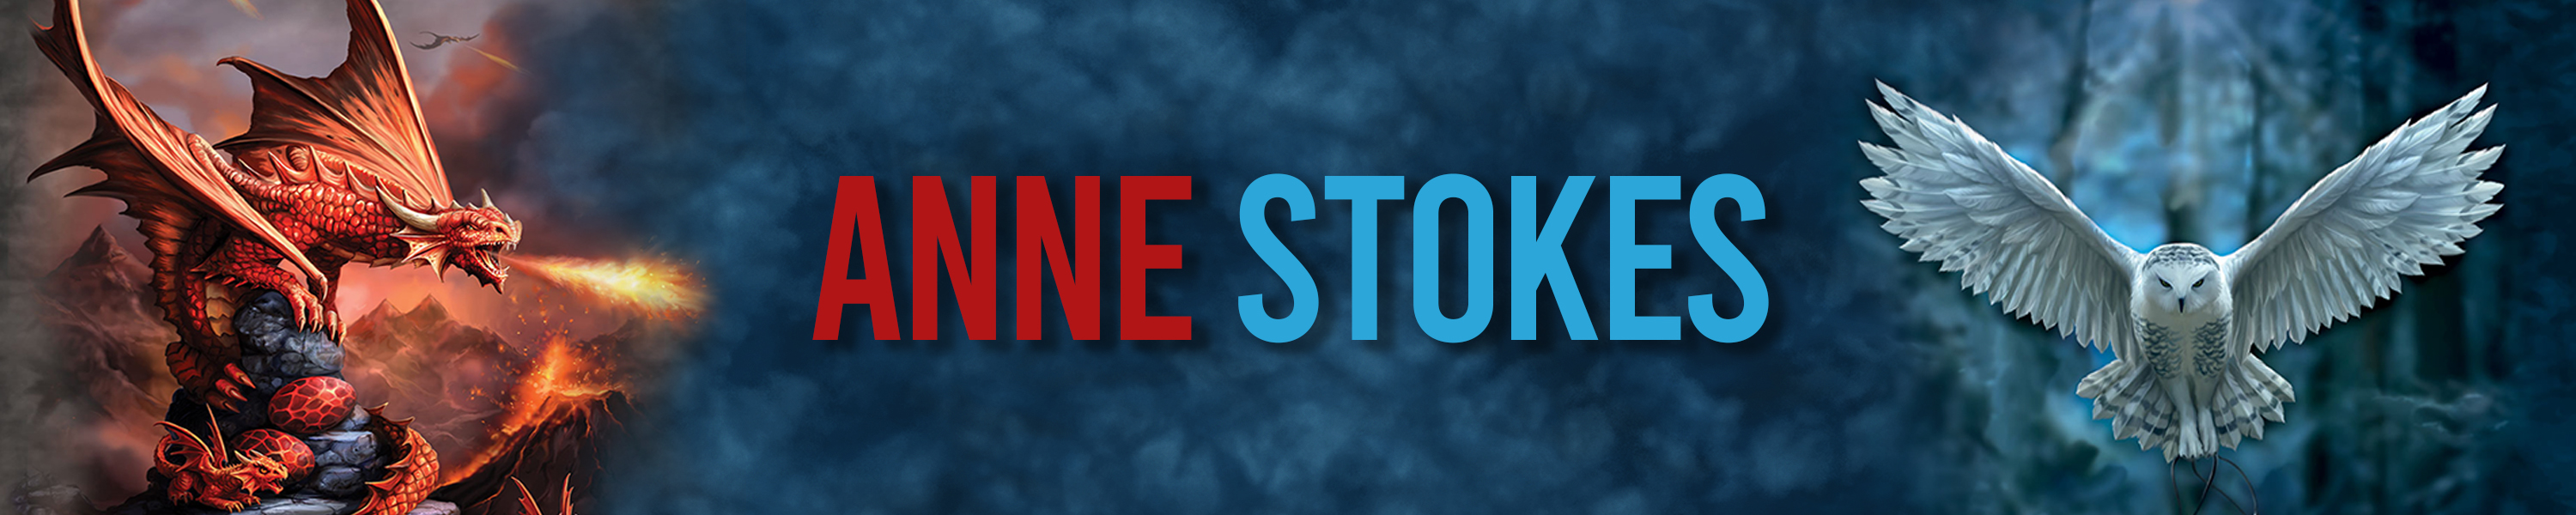 Anne Stokes Category Banner